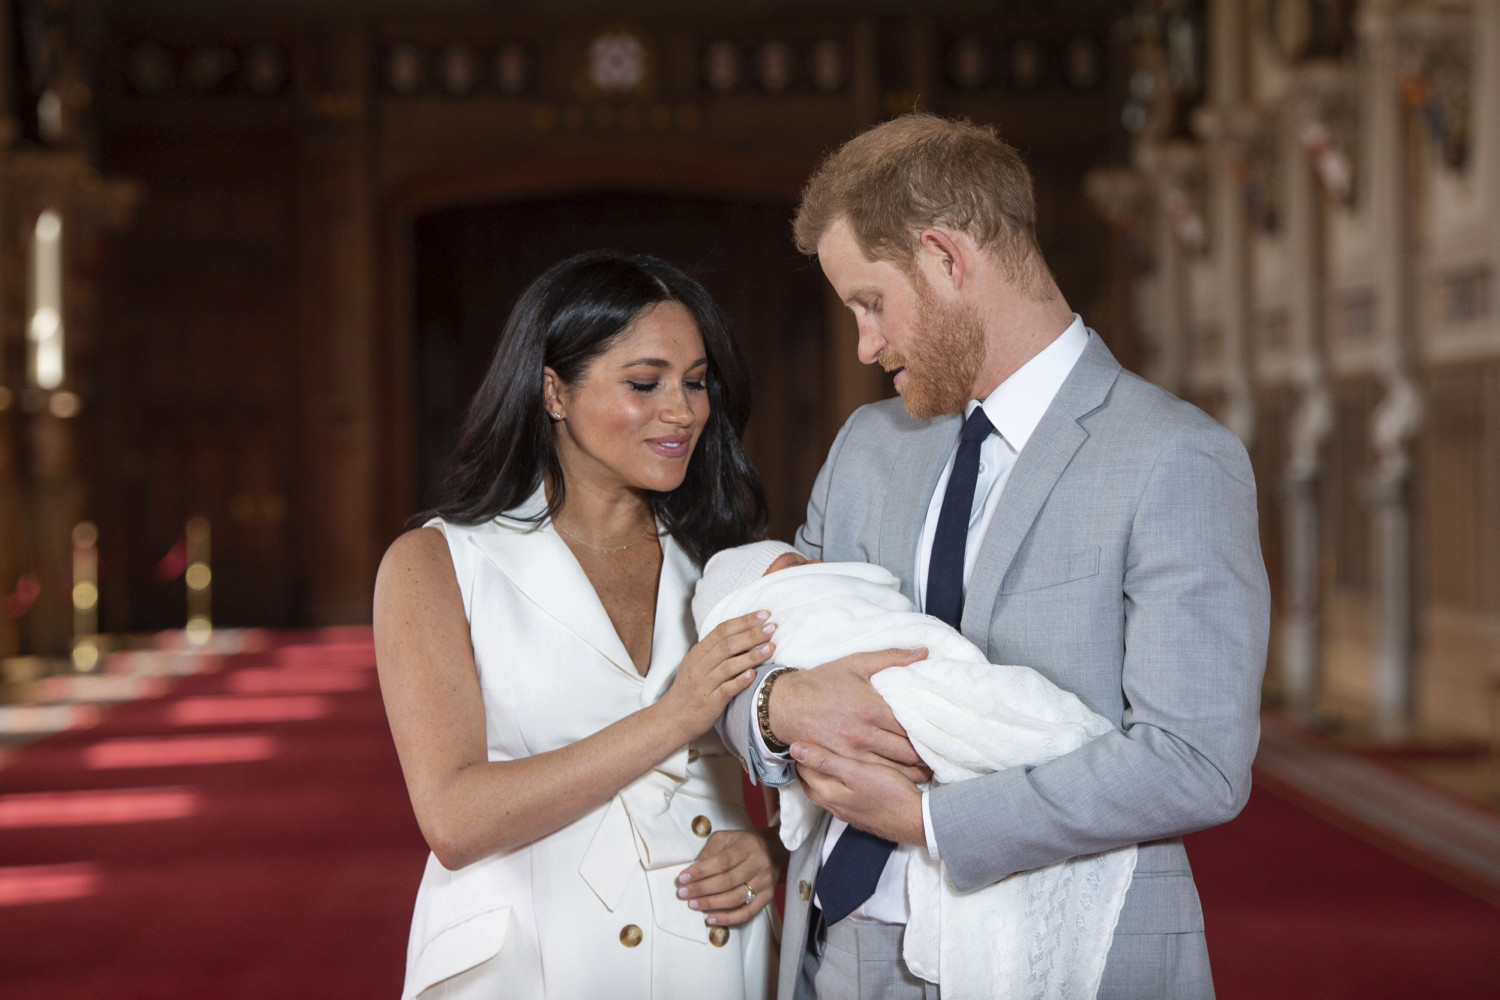 Meghan Markle and Prince Harry hold newborn baby Archie